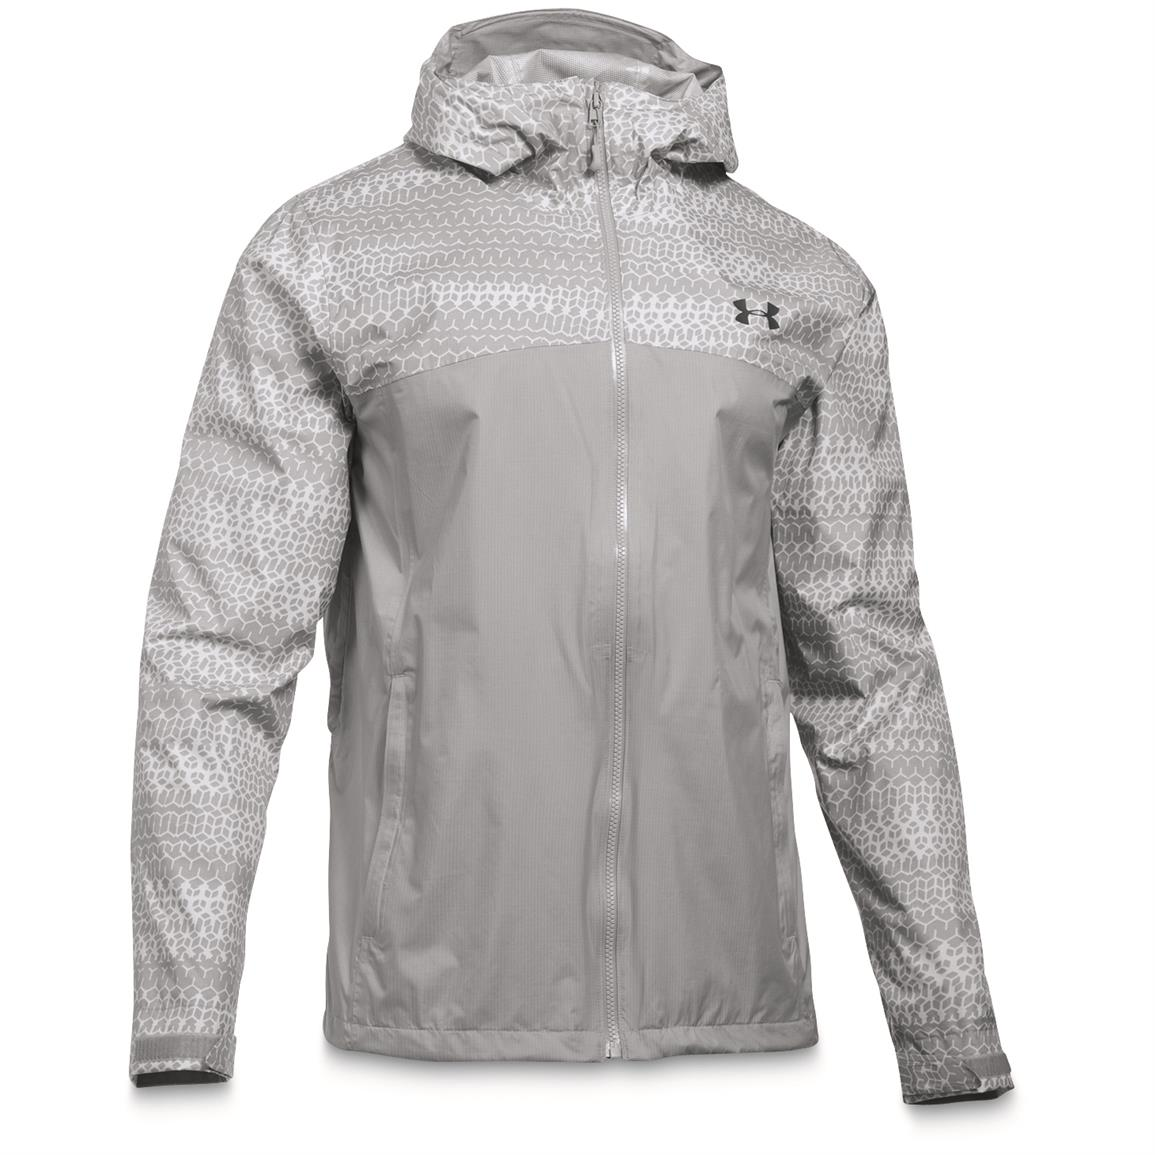 Under Armour Men's Waterproof/Windproof Surge Jacket, Overcast Gray